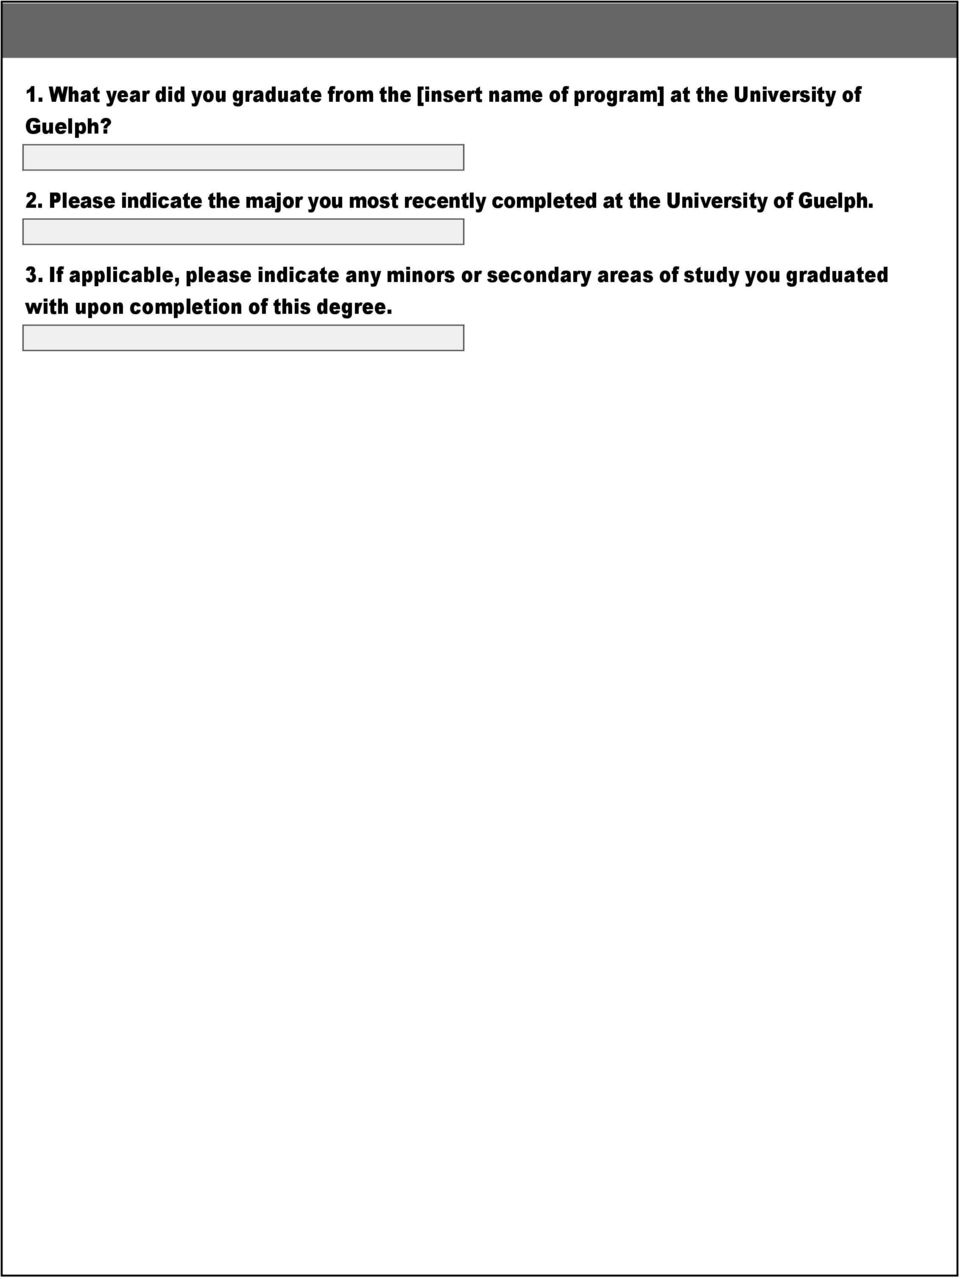 Please indicate the major you most recently completed at the University of